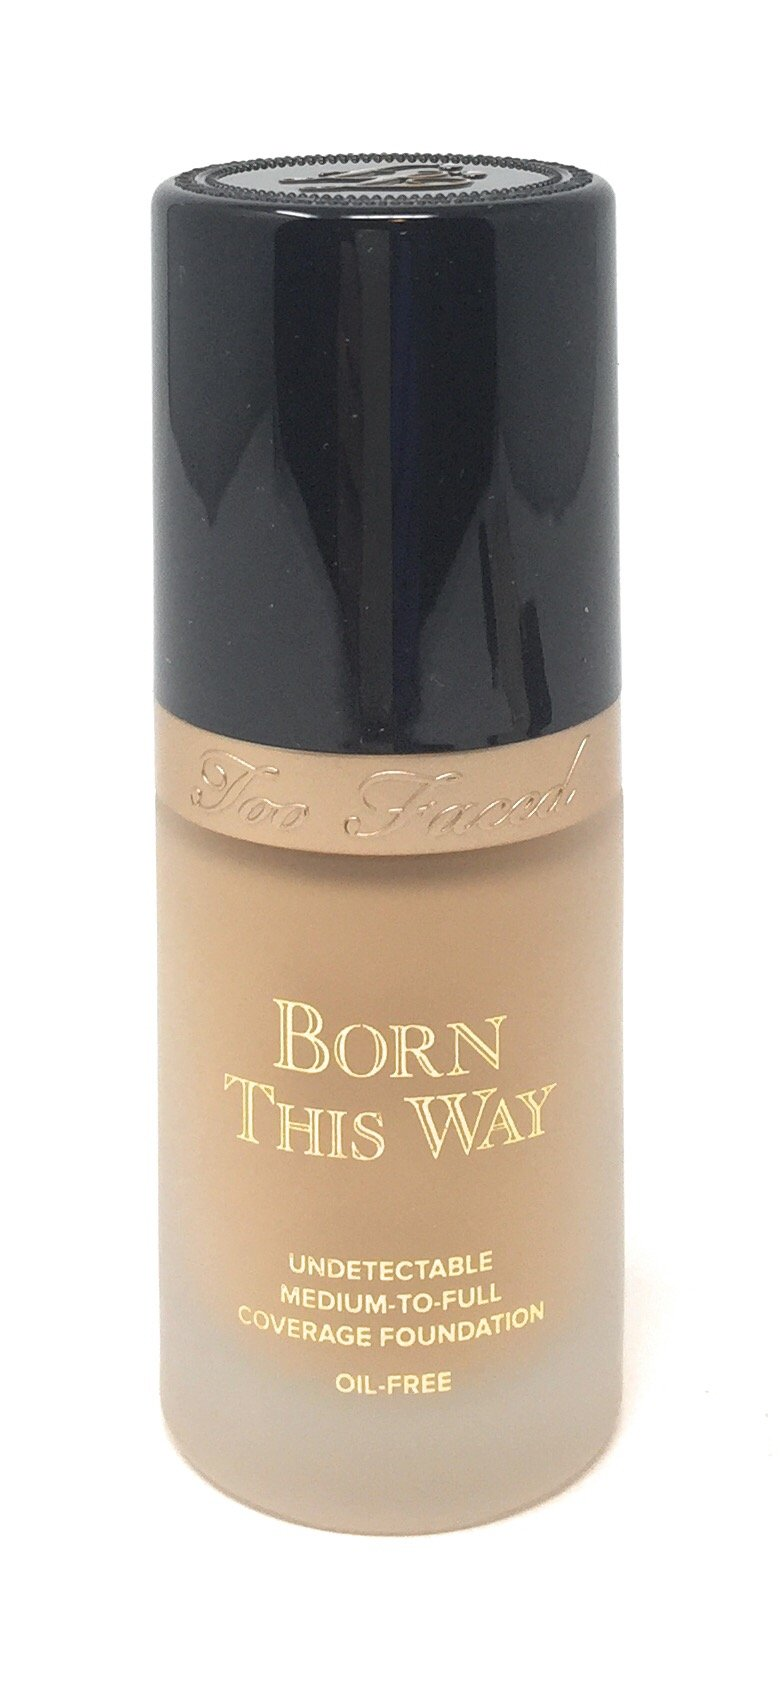 Too Faced Born This Way Medium-to-Full Coverage Foundation in Light Beige 1 OZ by Too Faced (Image #1)